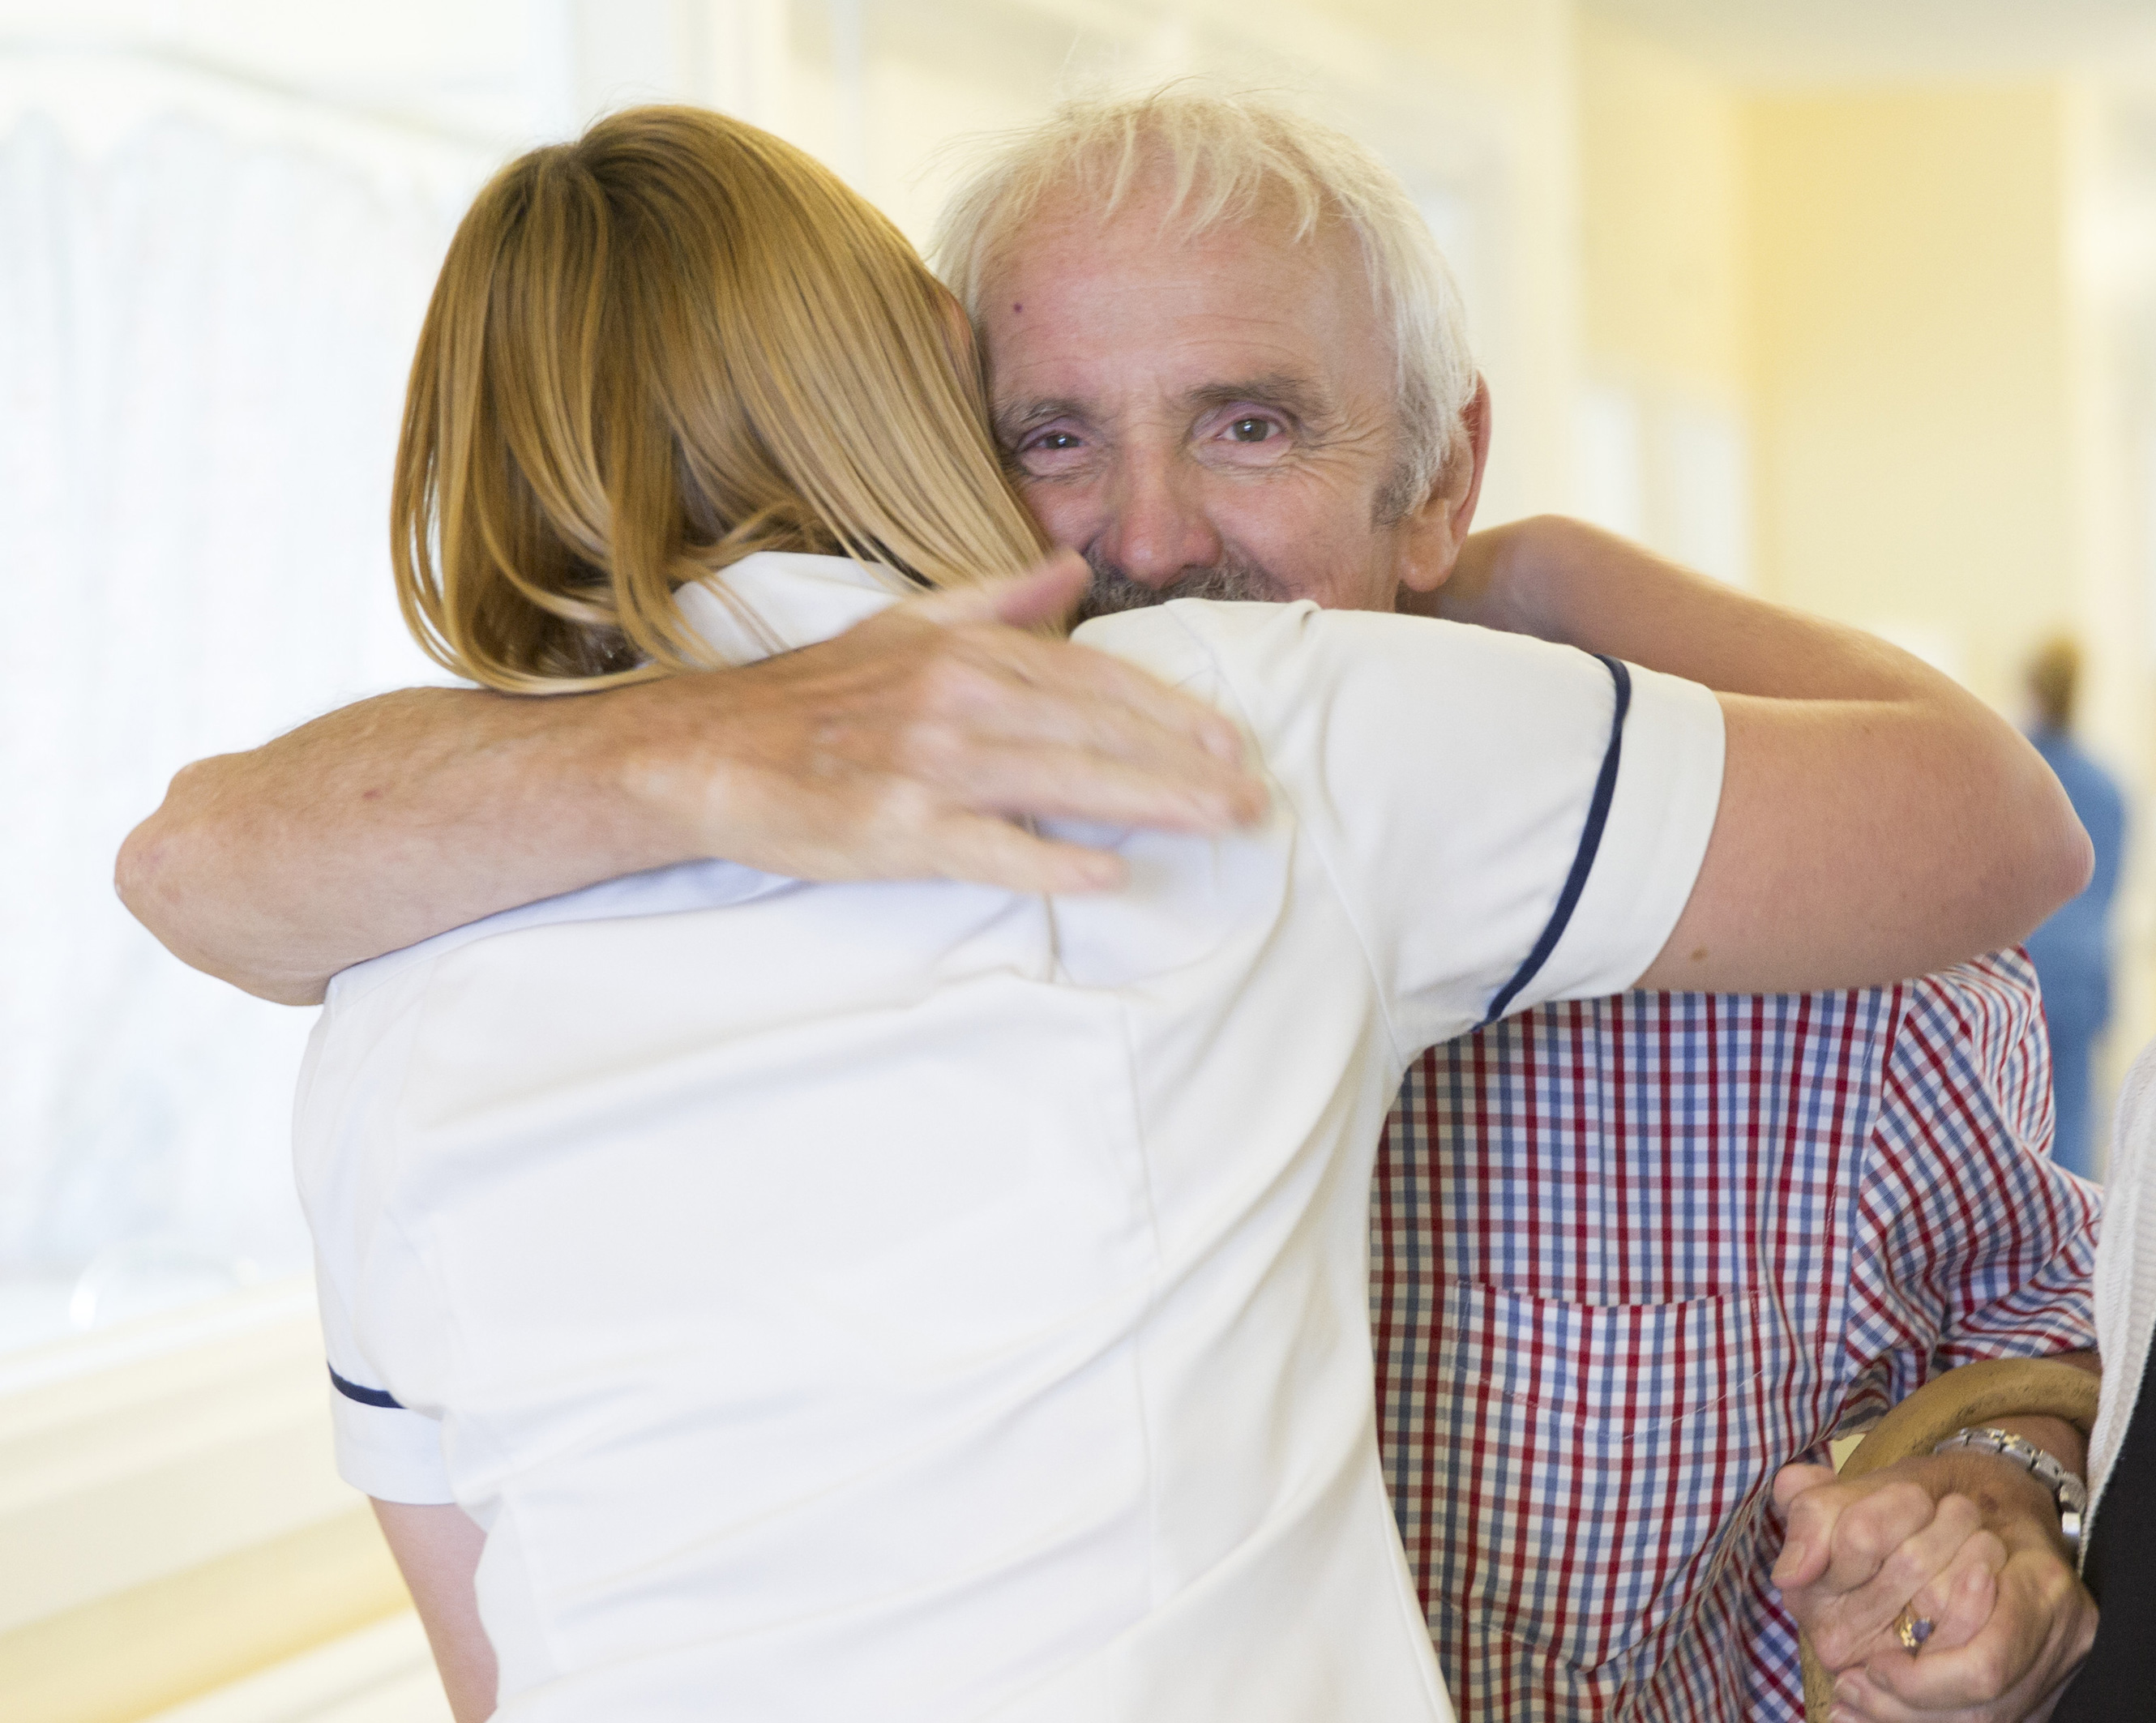 David Phillips, a man with white hair and grey moustache, can be seen looking over the shoulder of his physiotherapist Kathy who is giving him a hug.